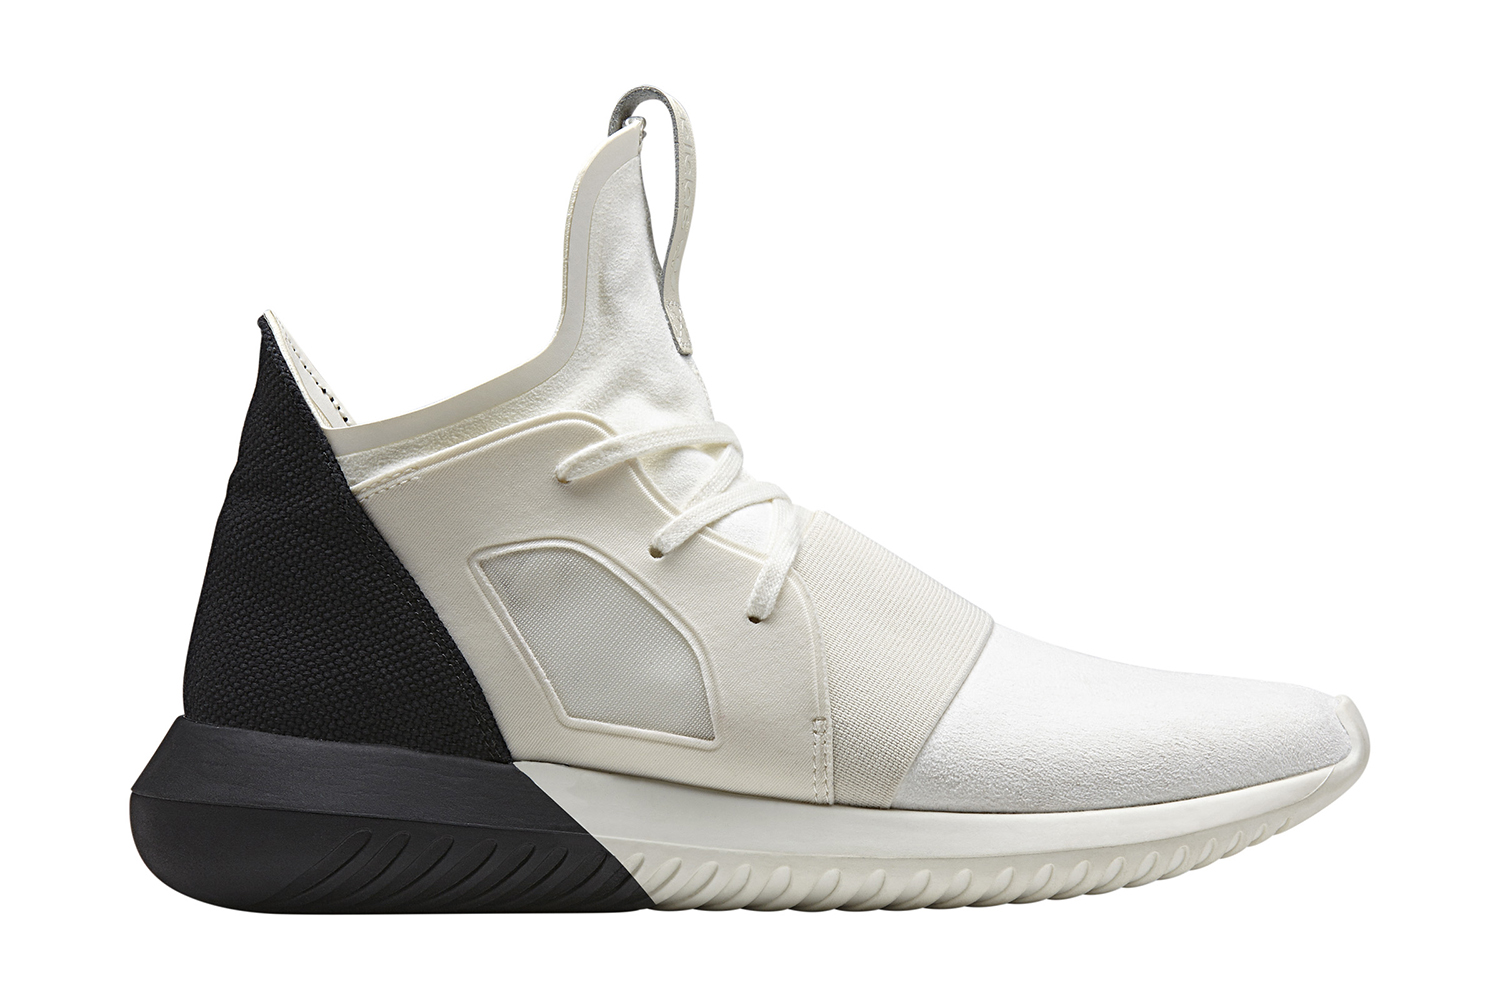 The adidas Tubular Doom Receives a New Primeknit Upper